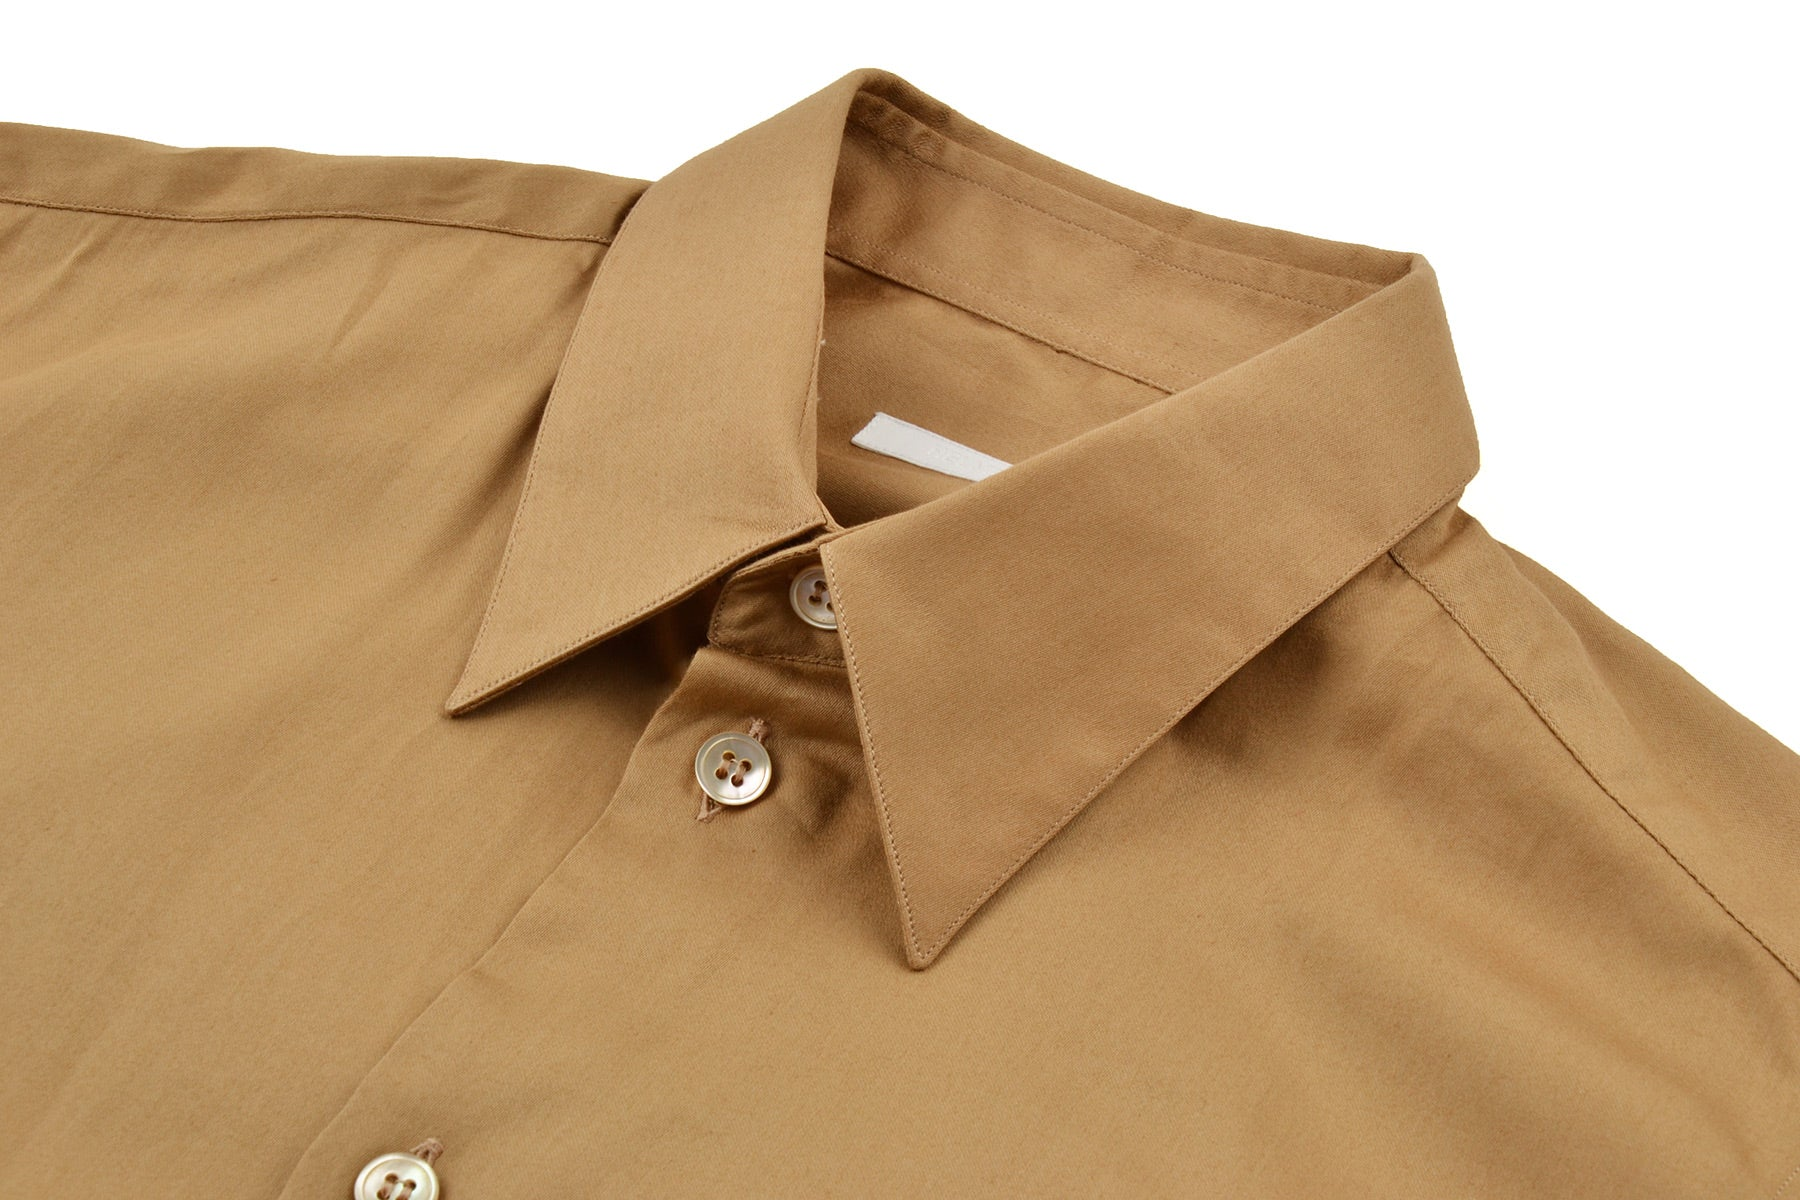 2001 S/S CLASSIC LONG-SLEEVE SATIN COTTON SHIRT WITH CHEST POCKET